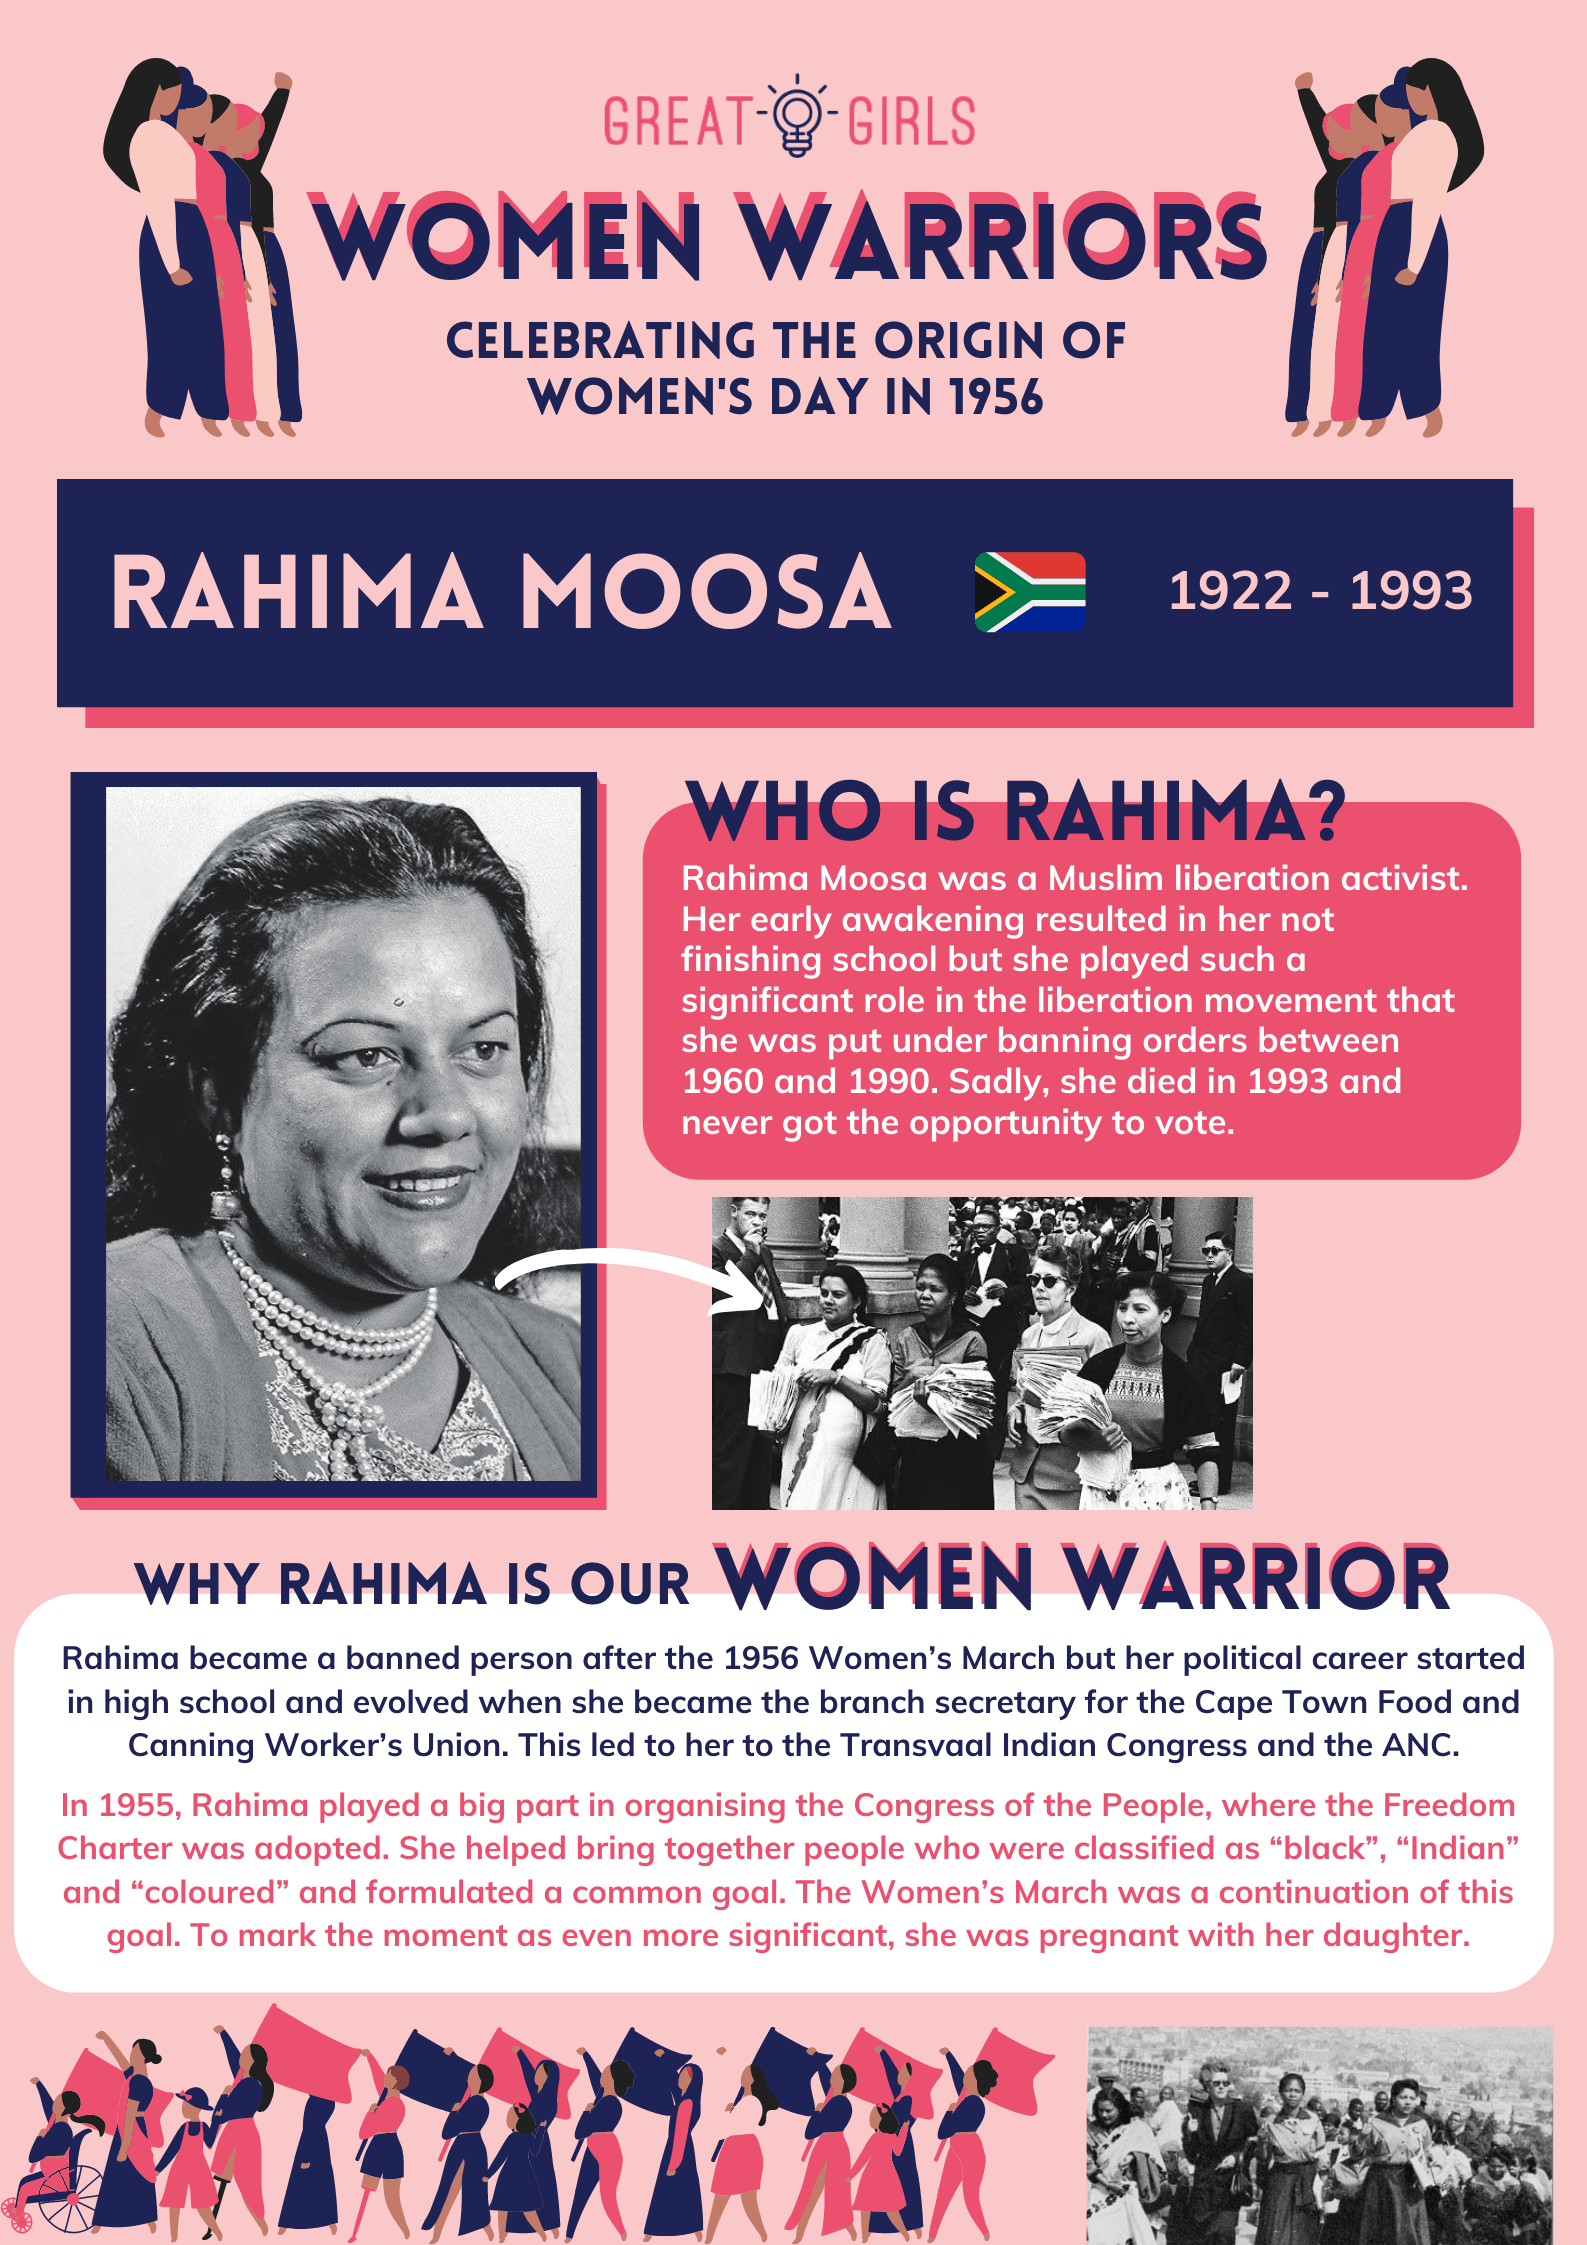 Women Warrior - Rahima Moosa